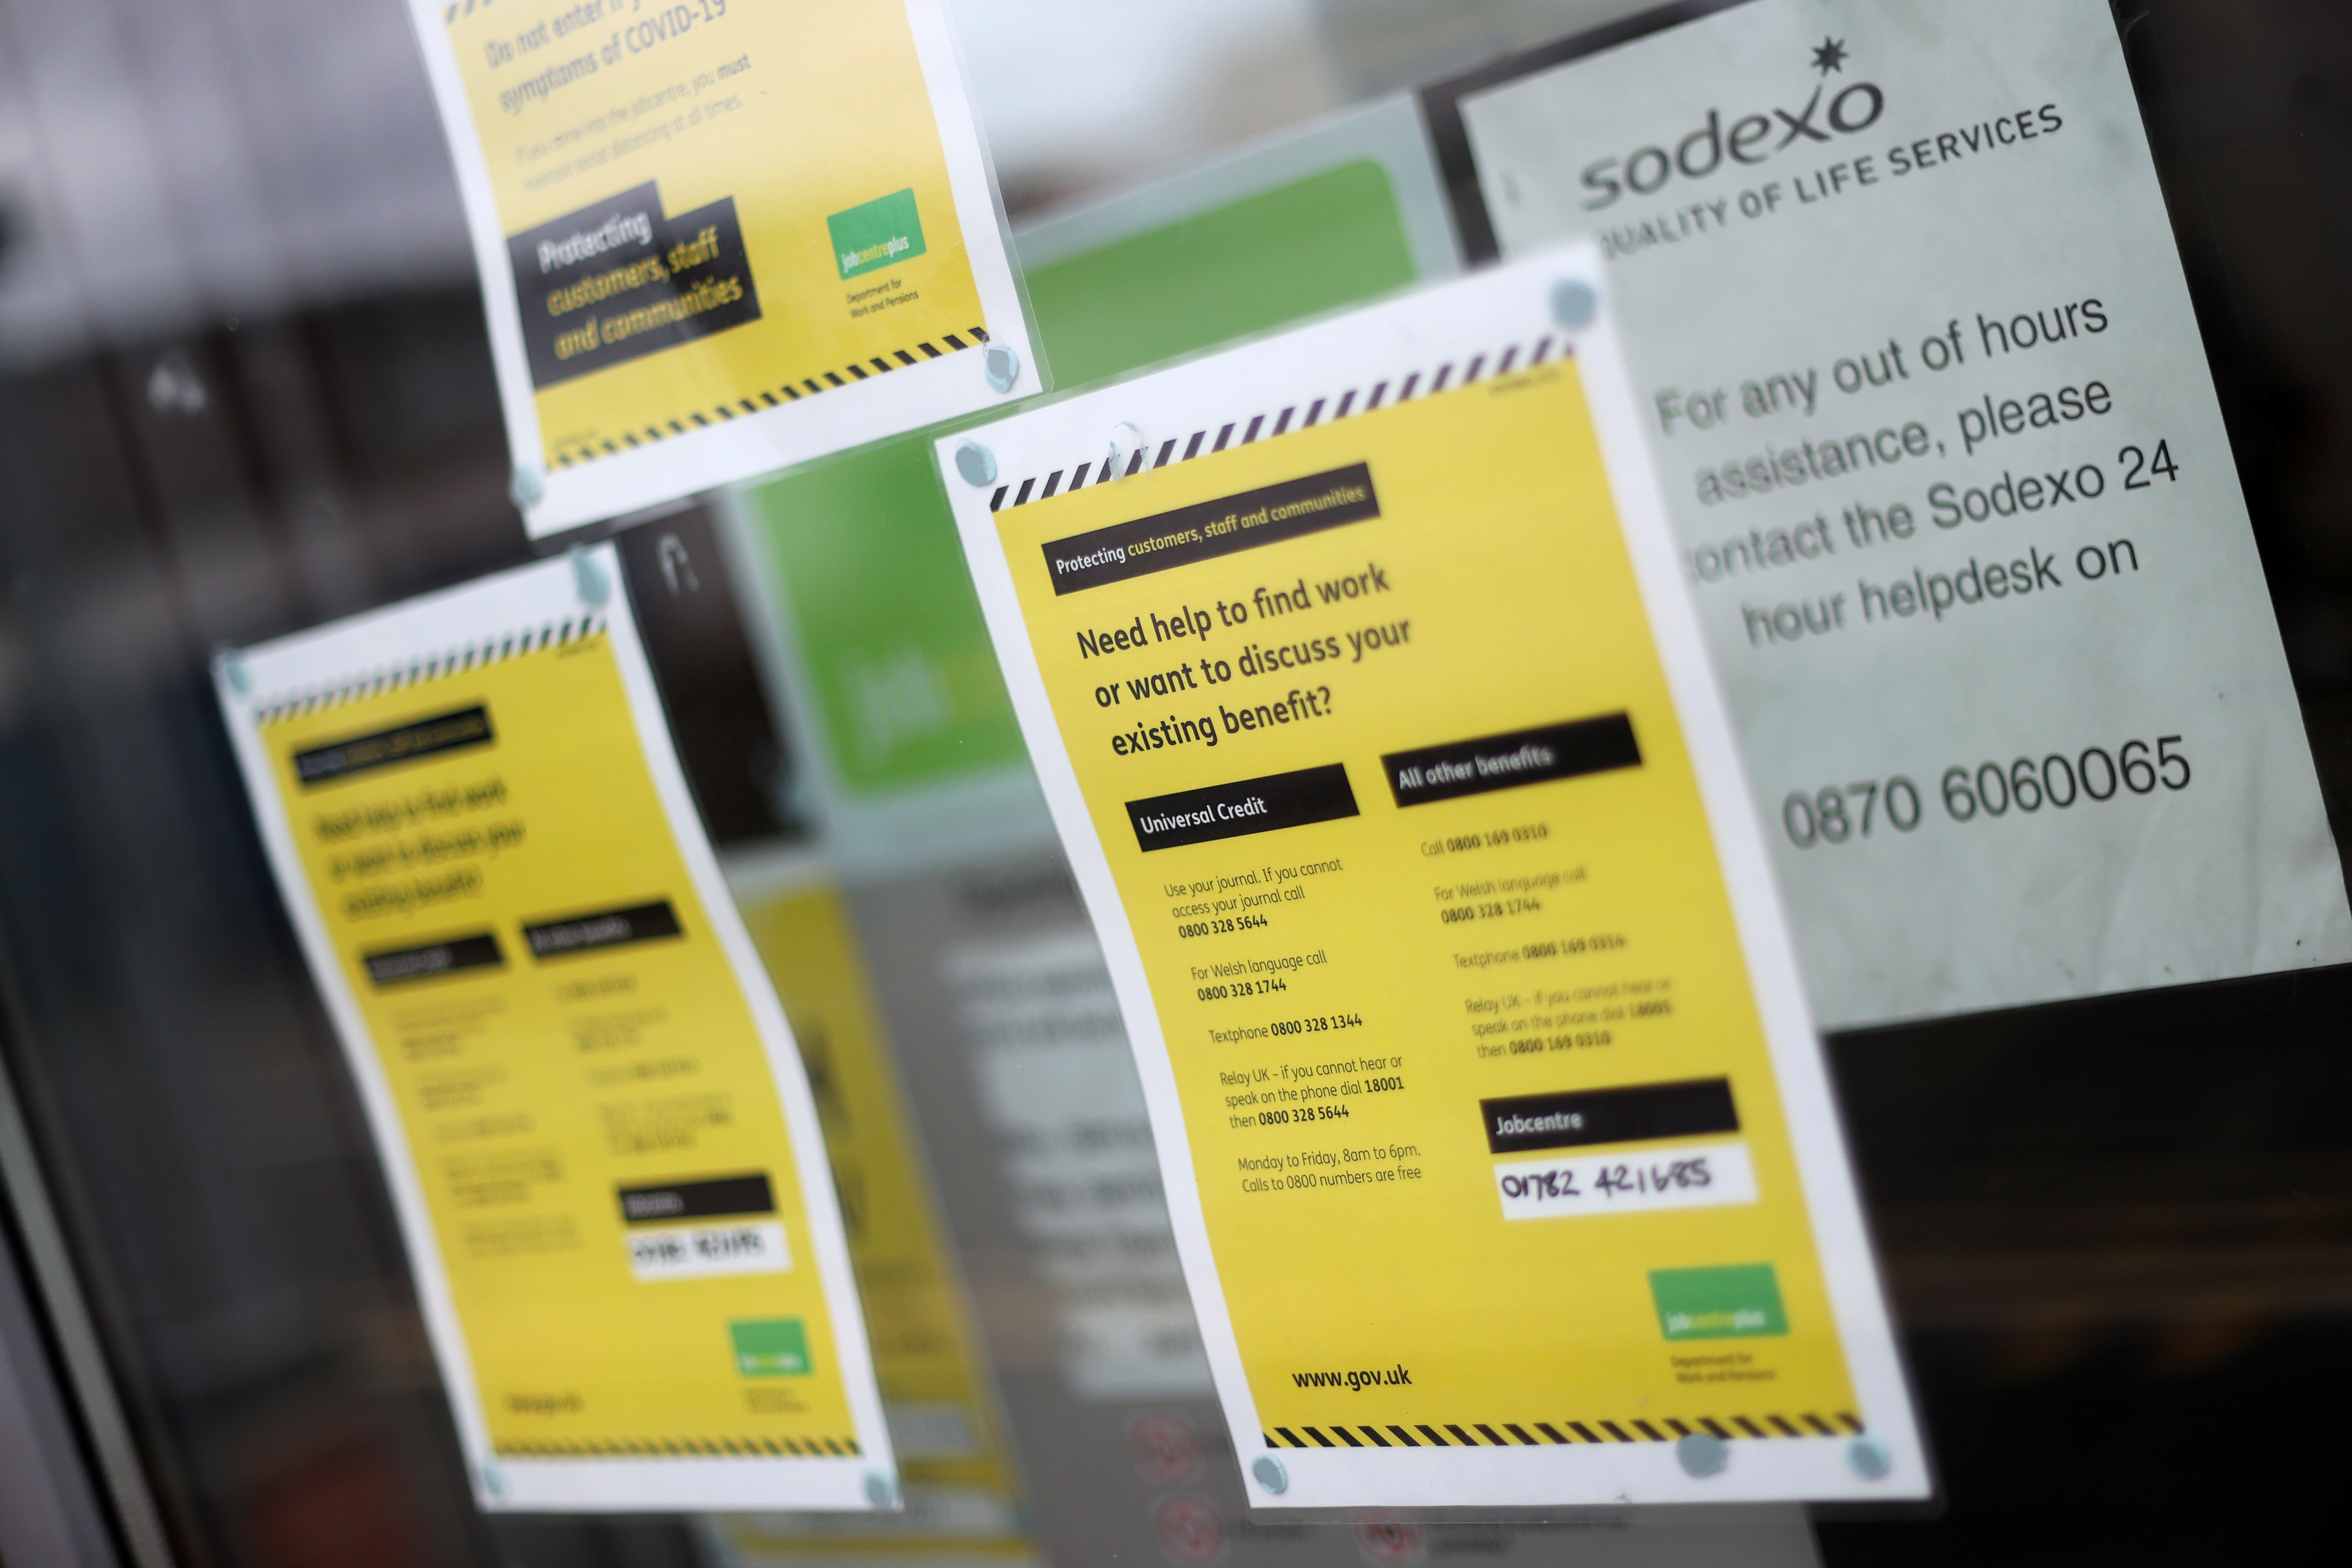 Advertisements for jobs are seen in a Job Recruitment Centre's window, amid the coronavirus disease (COVID-19) outbreak, in Stoke-on-Trent, Staffordshire, Britain August 6, 2020. REUTERS/Carl Recine